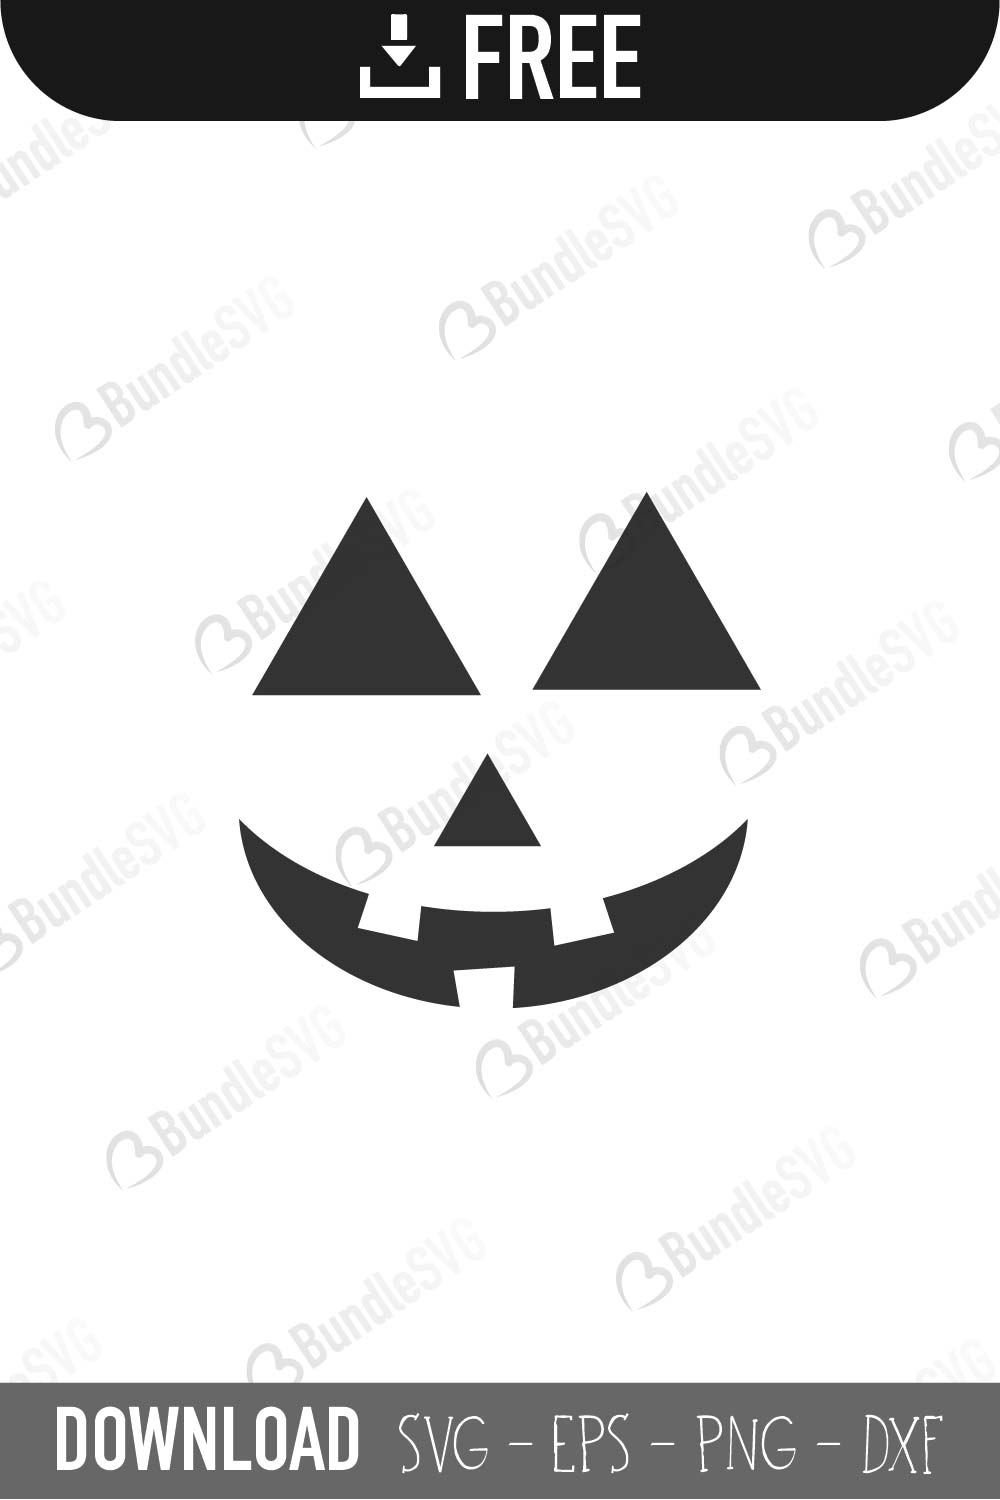 Jack O Lantern Face Svg : lantern, Lantern, Files, Download, BundleSVG